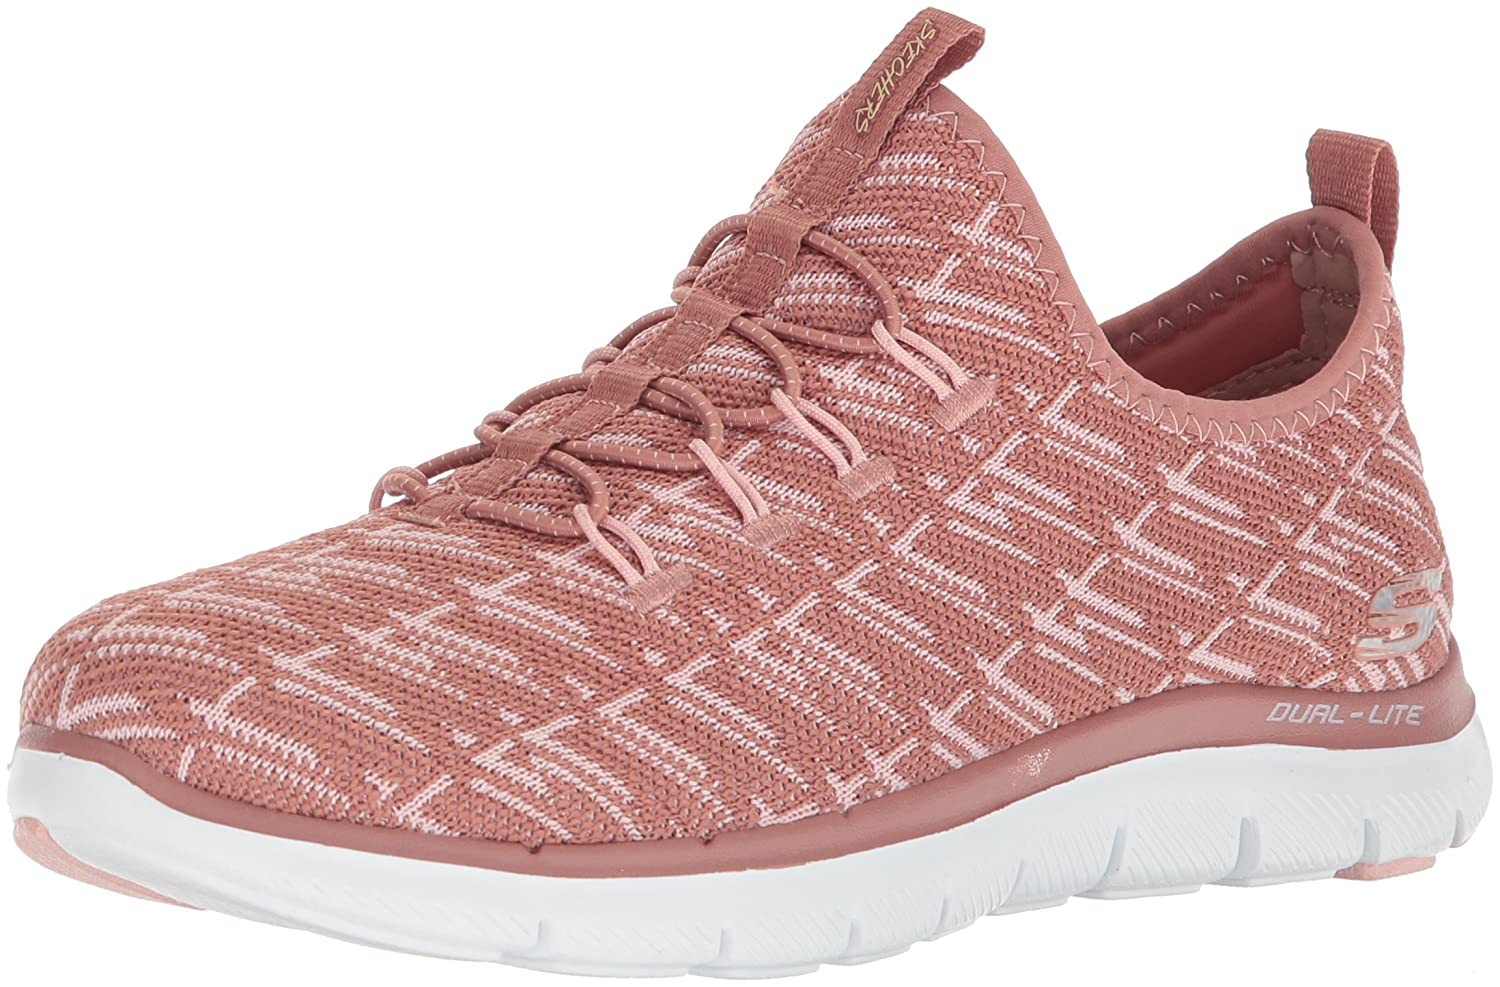 Skechers Women's Flex Appeal 2.0 Insight Sneaker B071X4RLVV 10 B(M) US|Rose